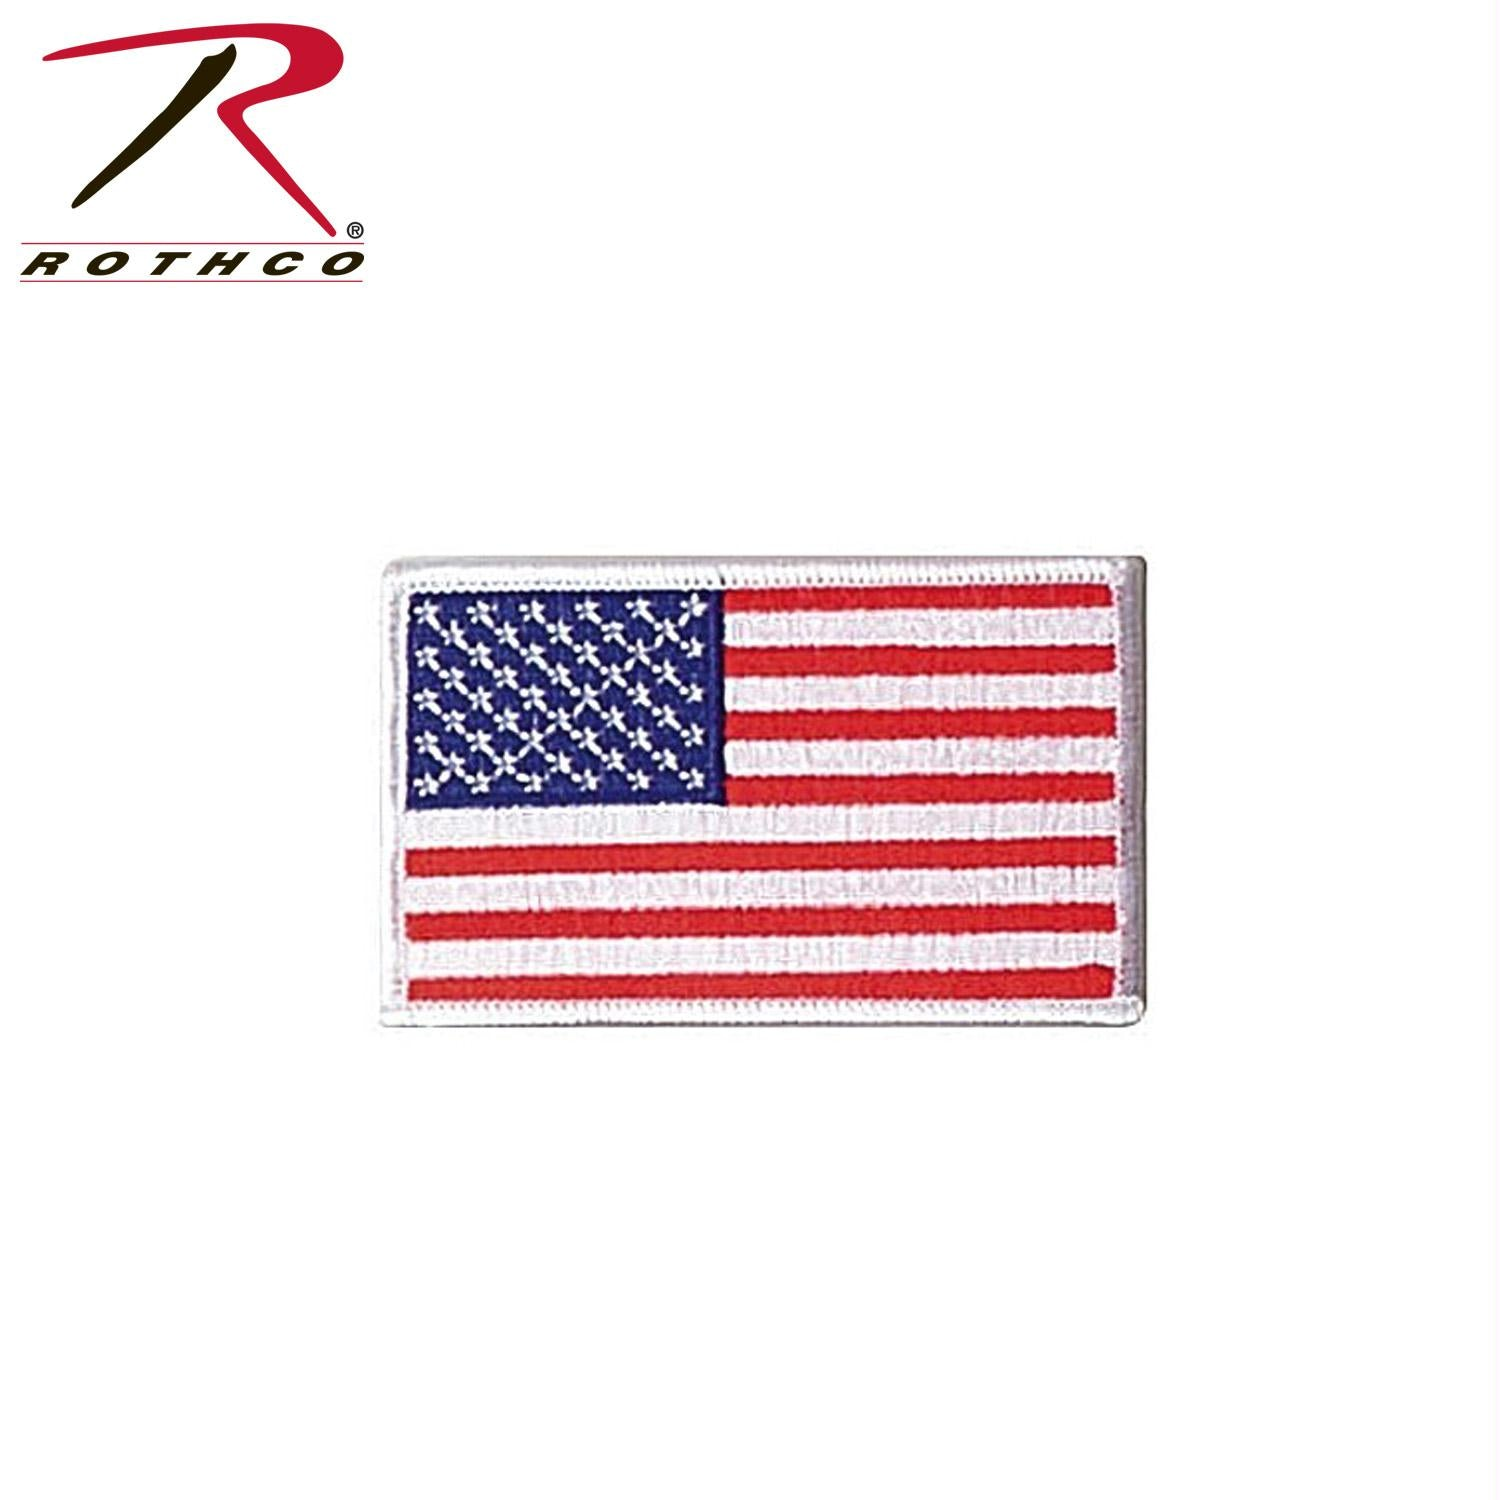 Rothco Iron On / Sew On Embroidered US Flag Patch - Red White Blue with White Border / Normal